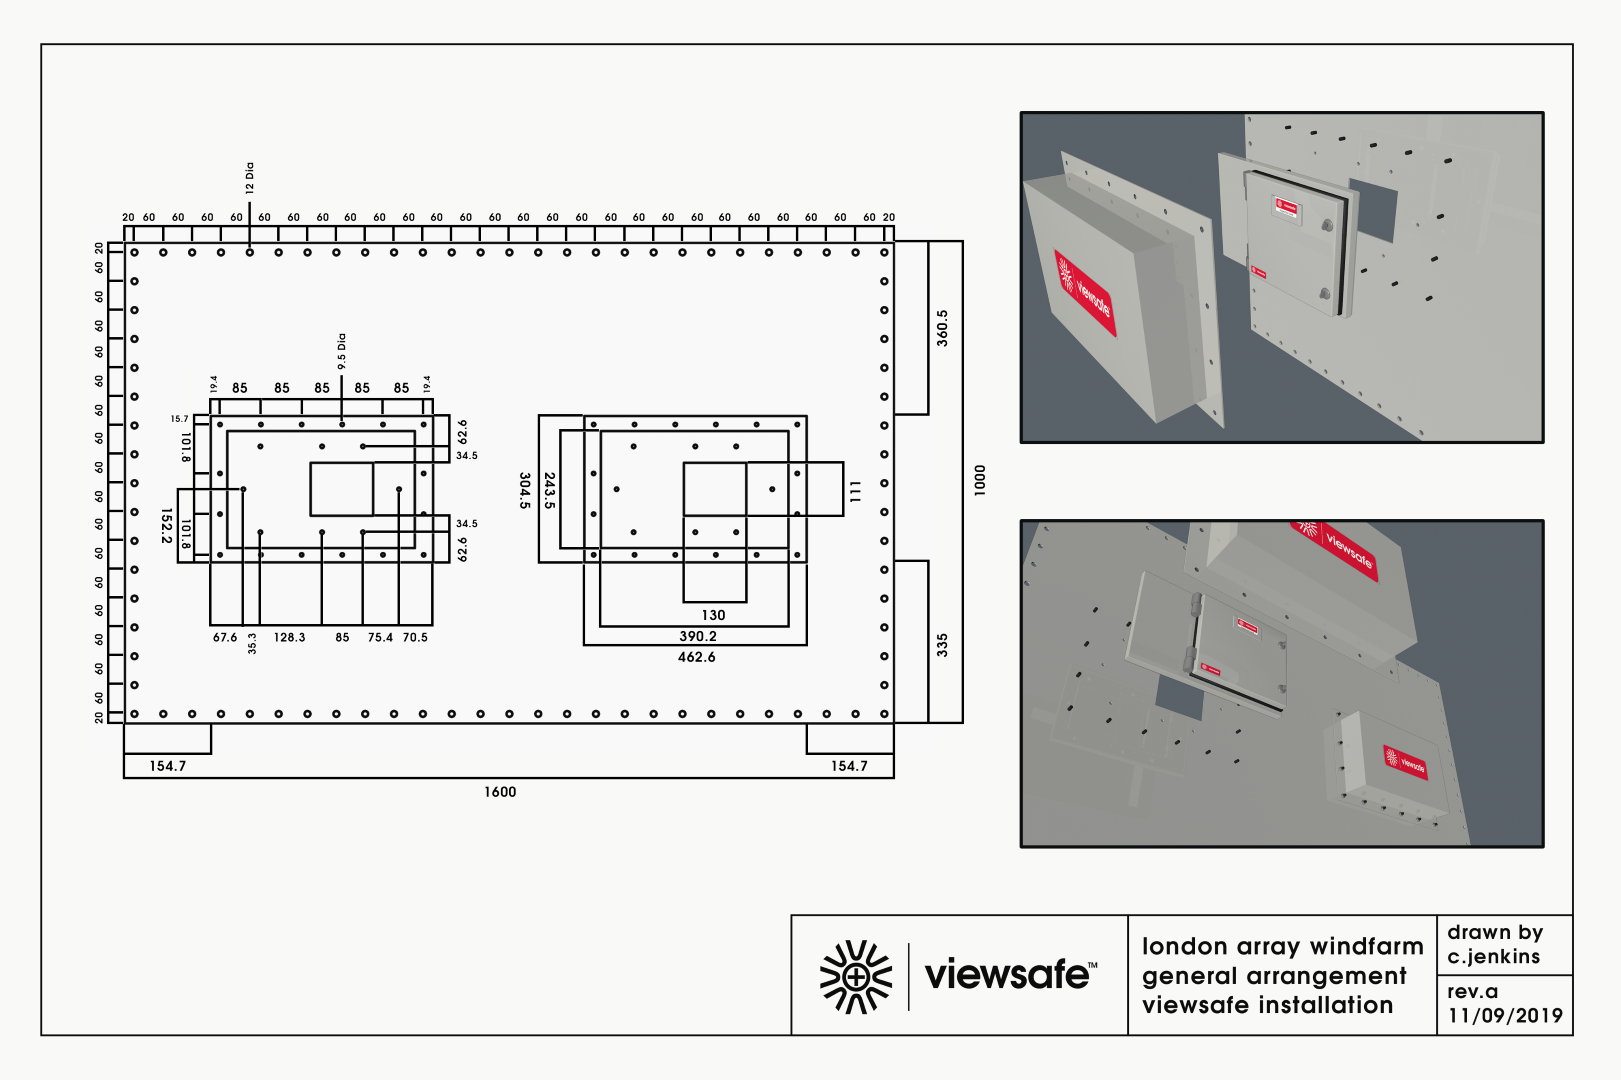 AutoCAD Drawings